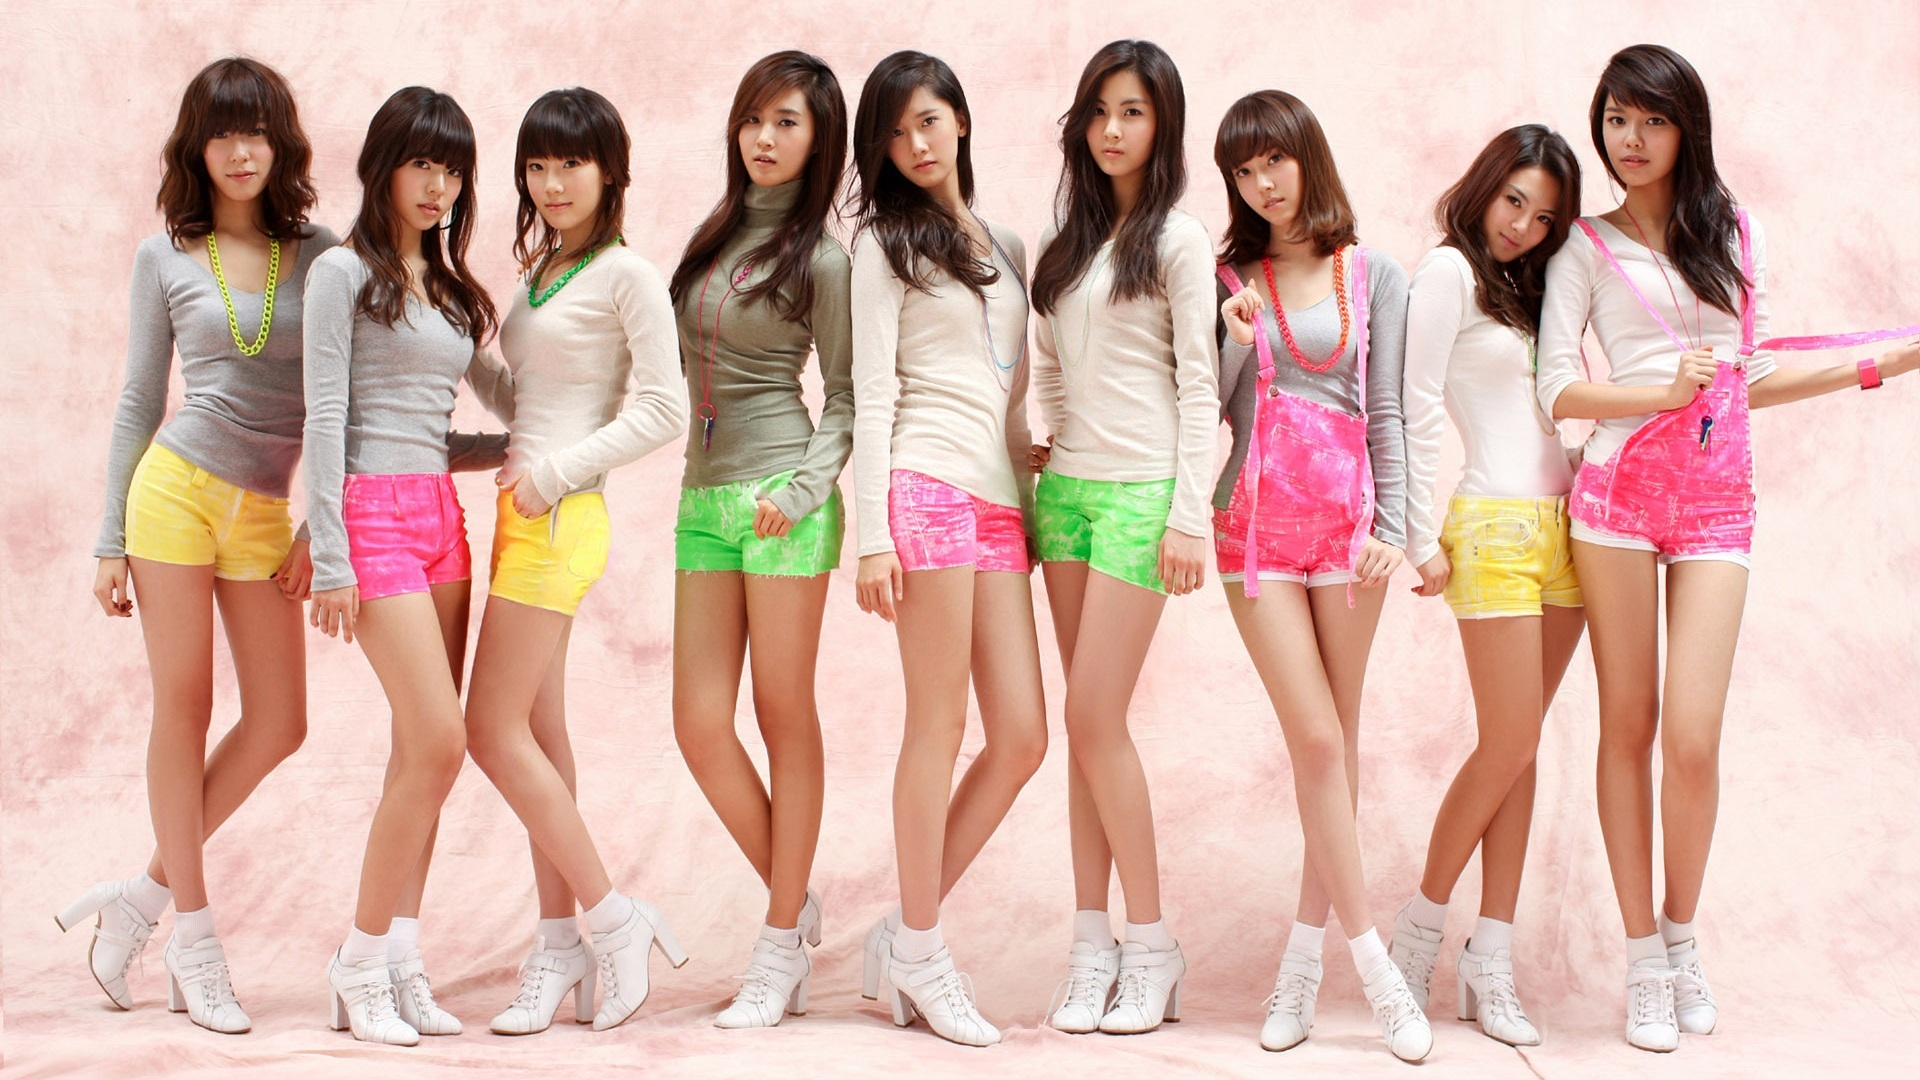 Girls generation 02 wallpaper 1920x1080 wallpaper download girls